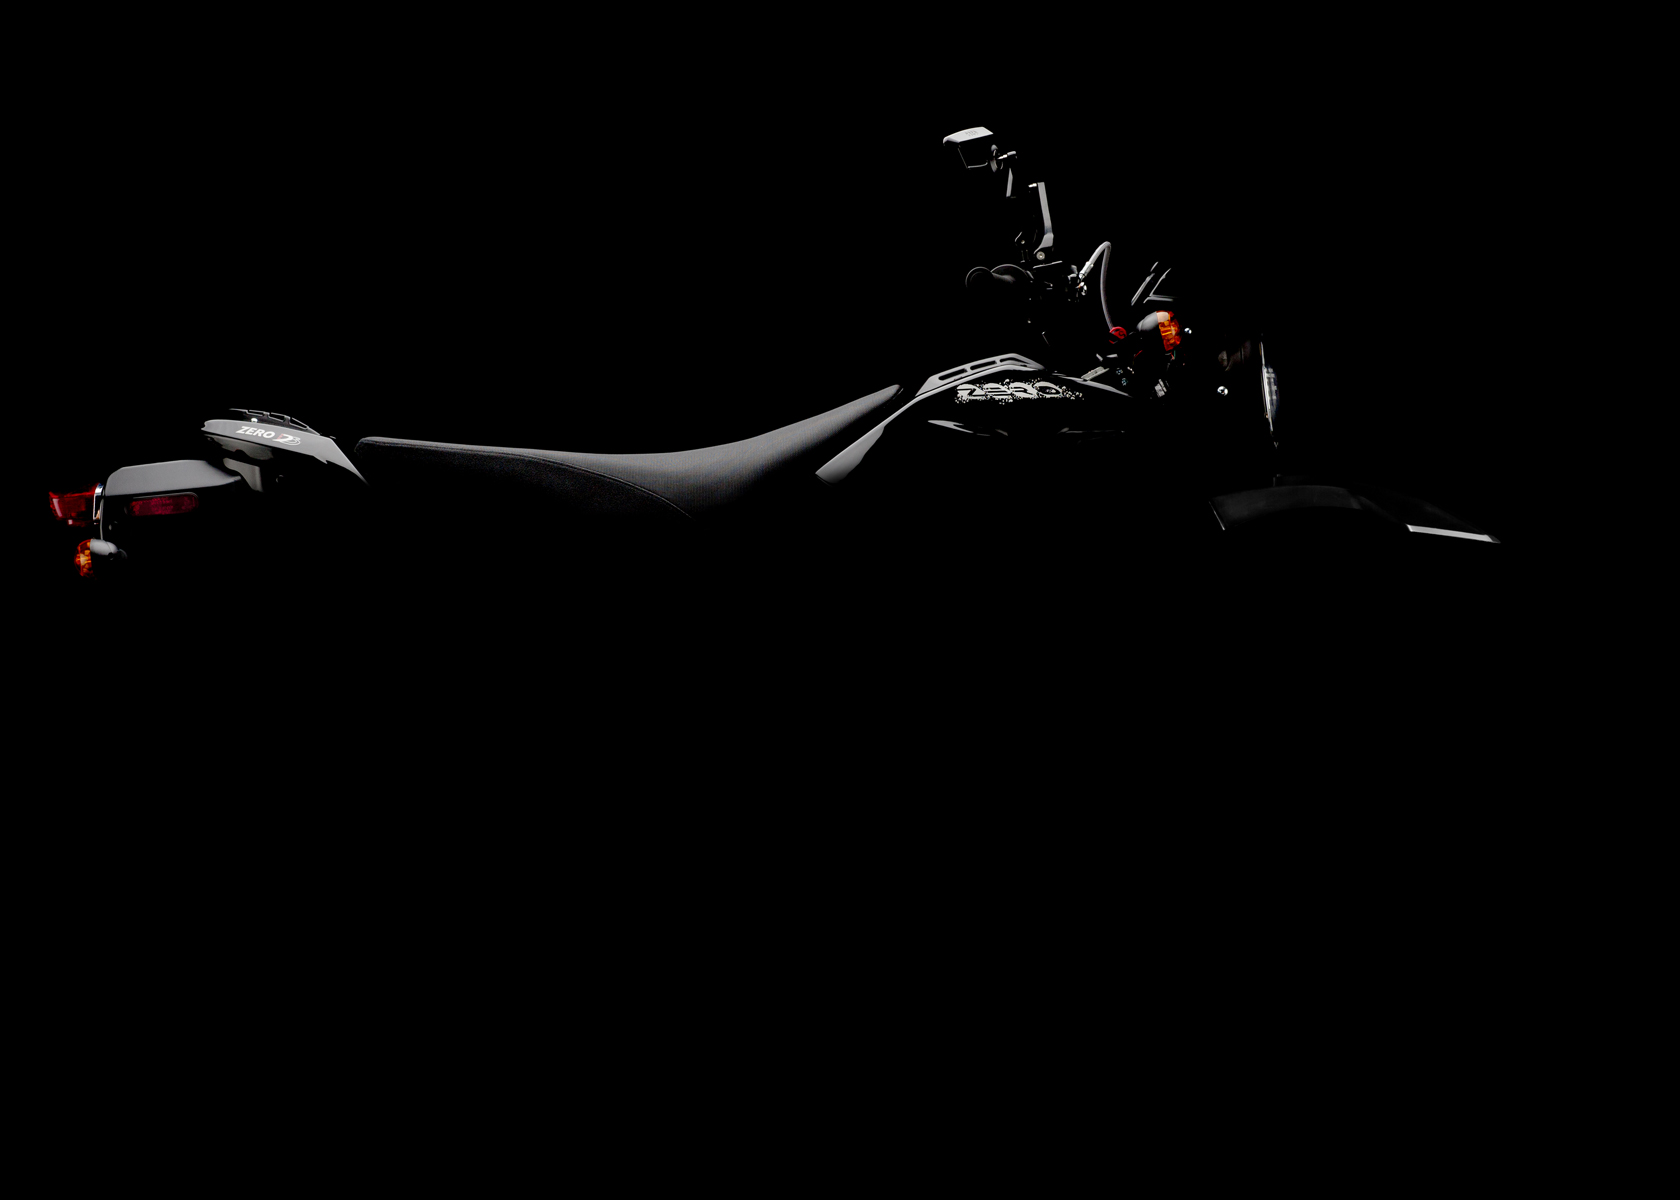 '.2011 Zero DS Electric Motorcycle: Silhouette.'